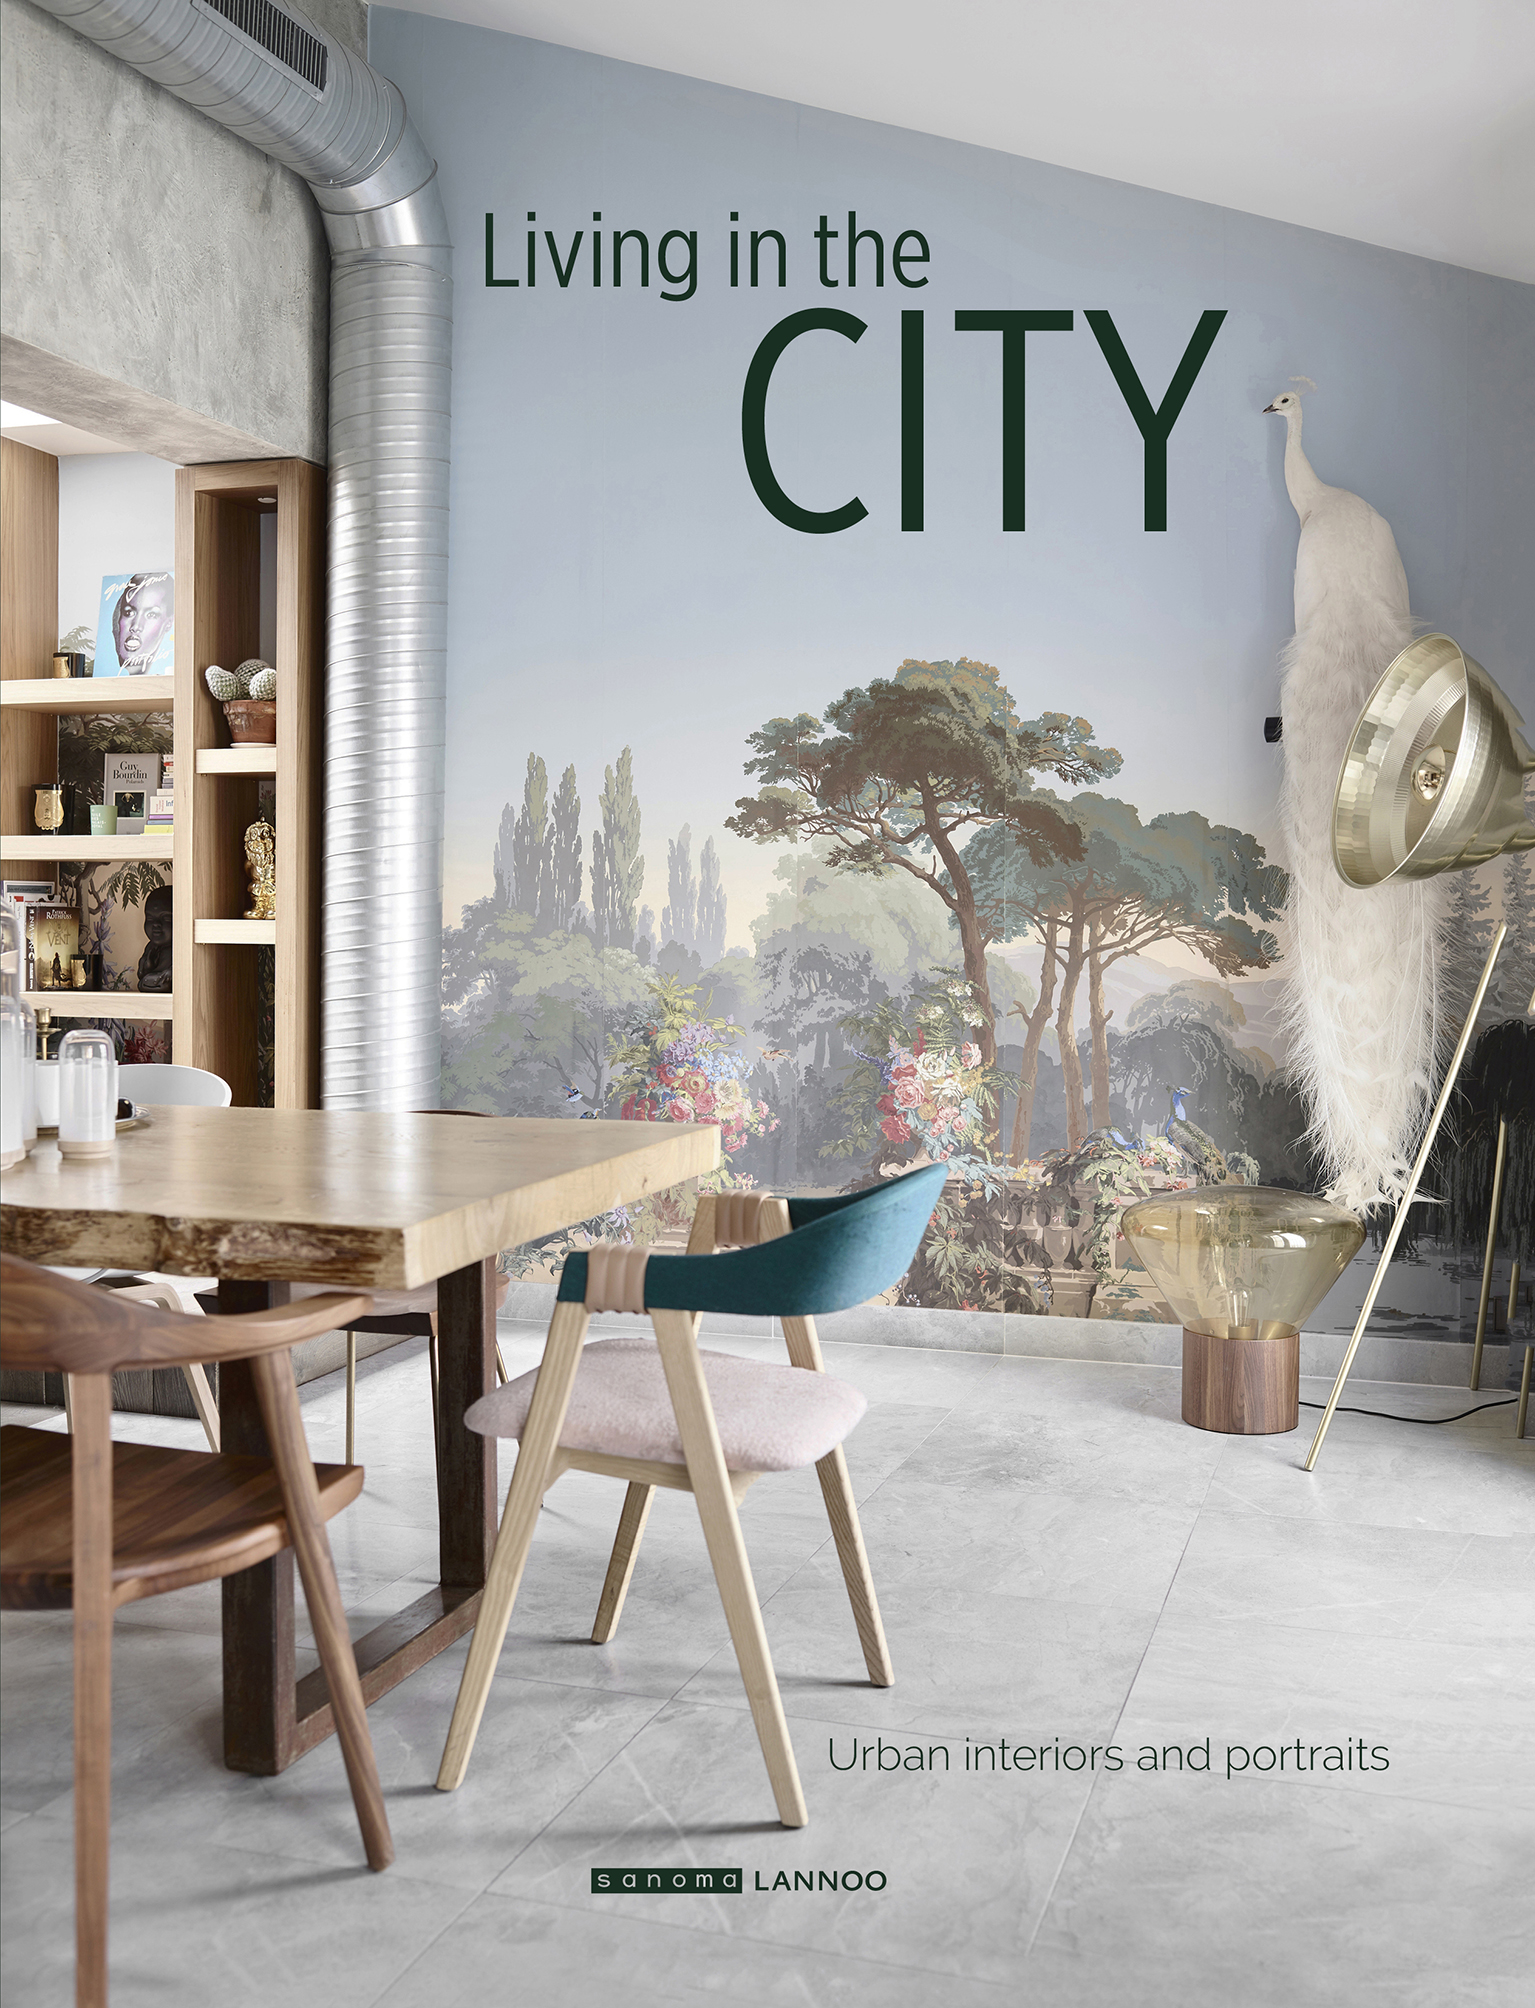 Interieurboek: wonen in de stad. De mooiste interieurs. Living in the City - Lannoo